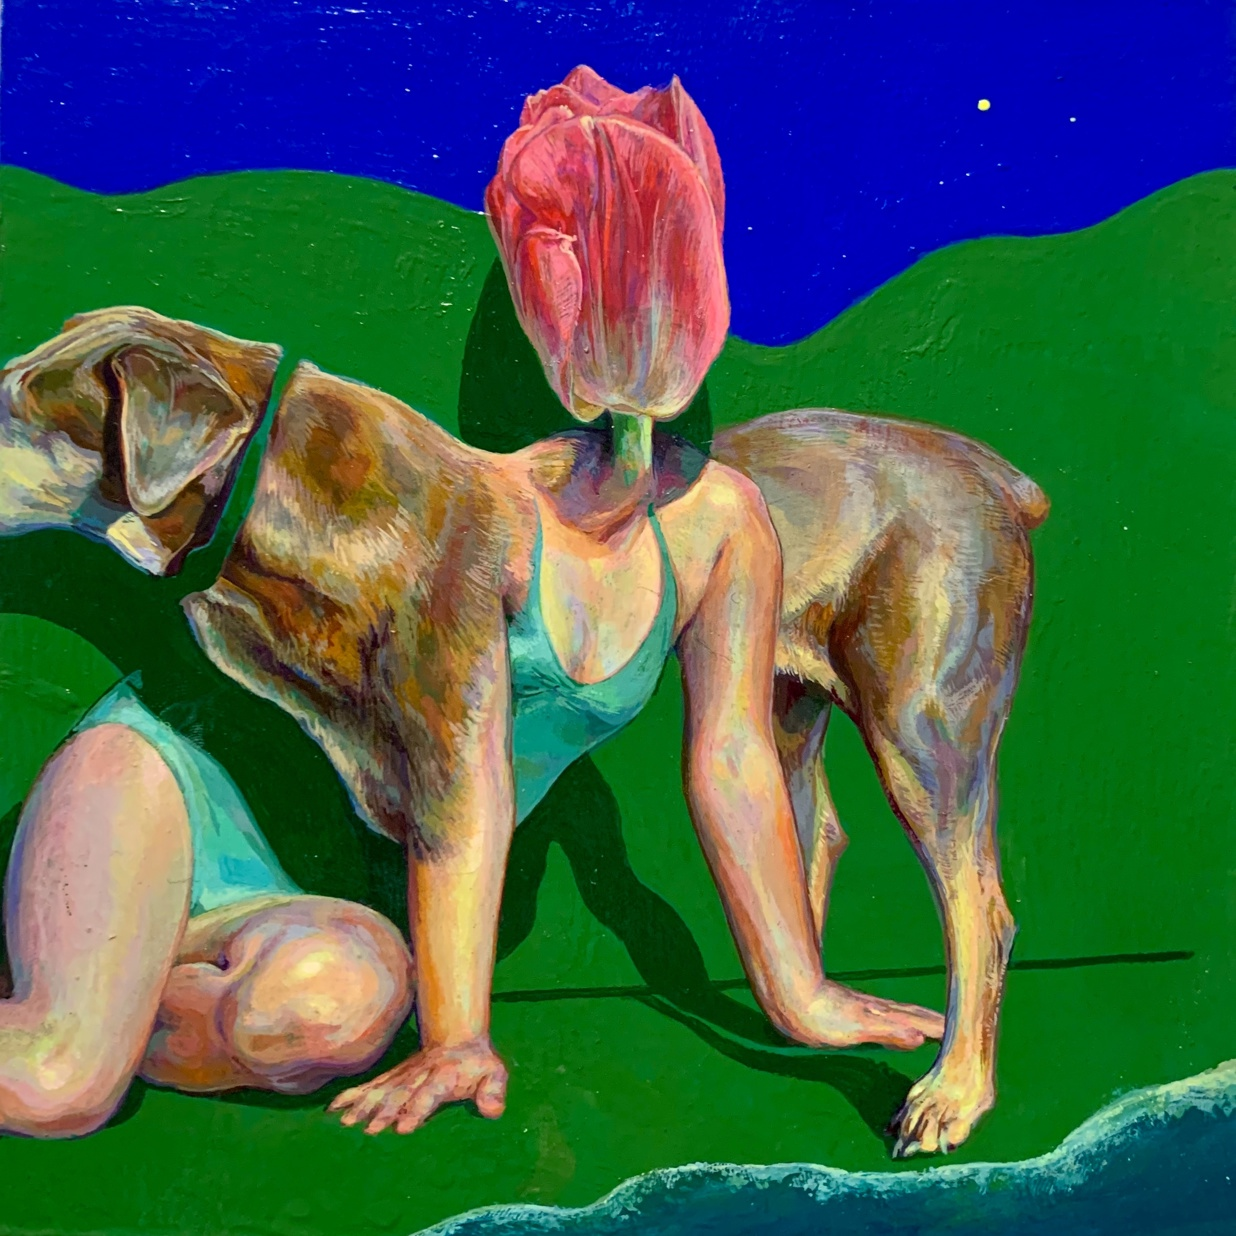 This surrealist composition presents a fantasy figure made from the merging forms of a dog, woman, and tulip. It is painted against a plain backdrop of green and blue, which is suggestive of a bright sky and a lush mountain range. In the bottom right